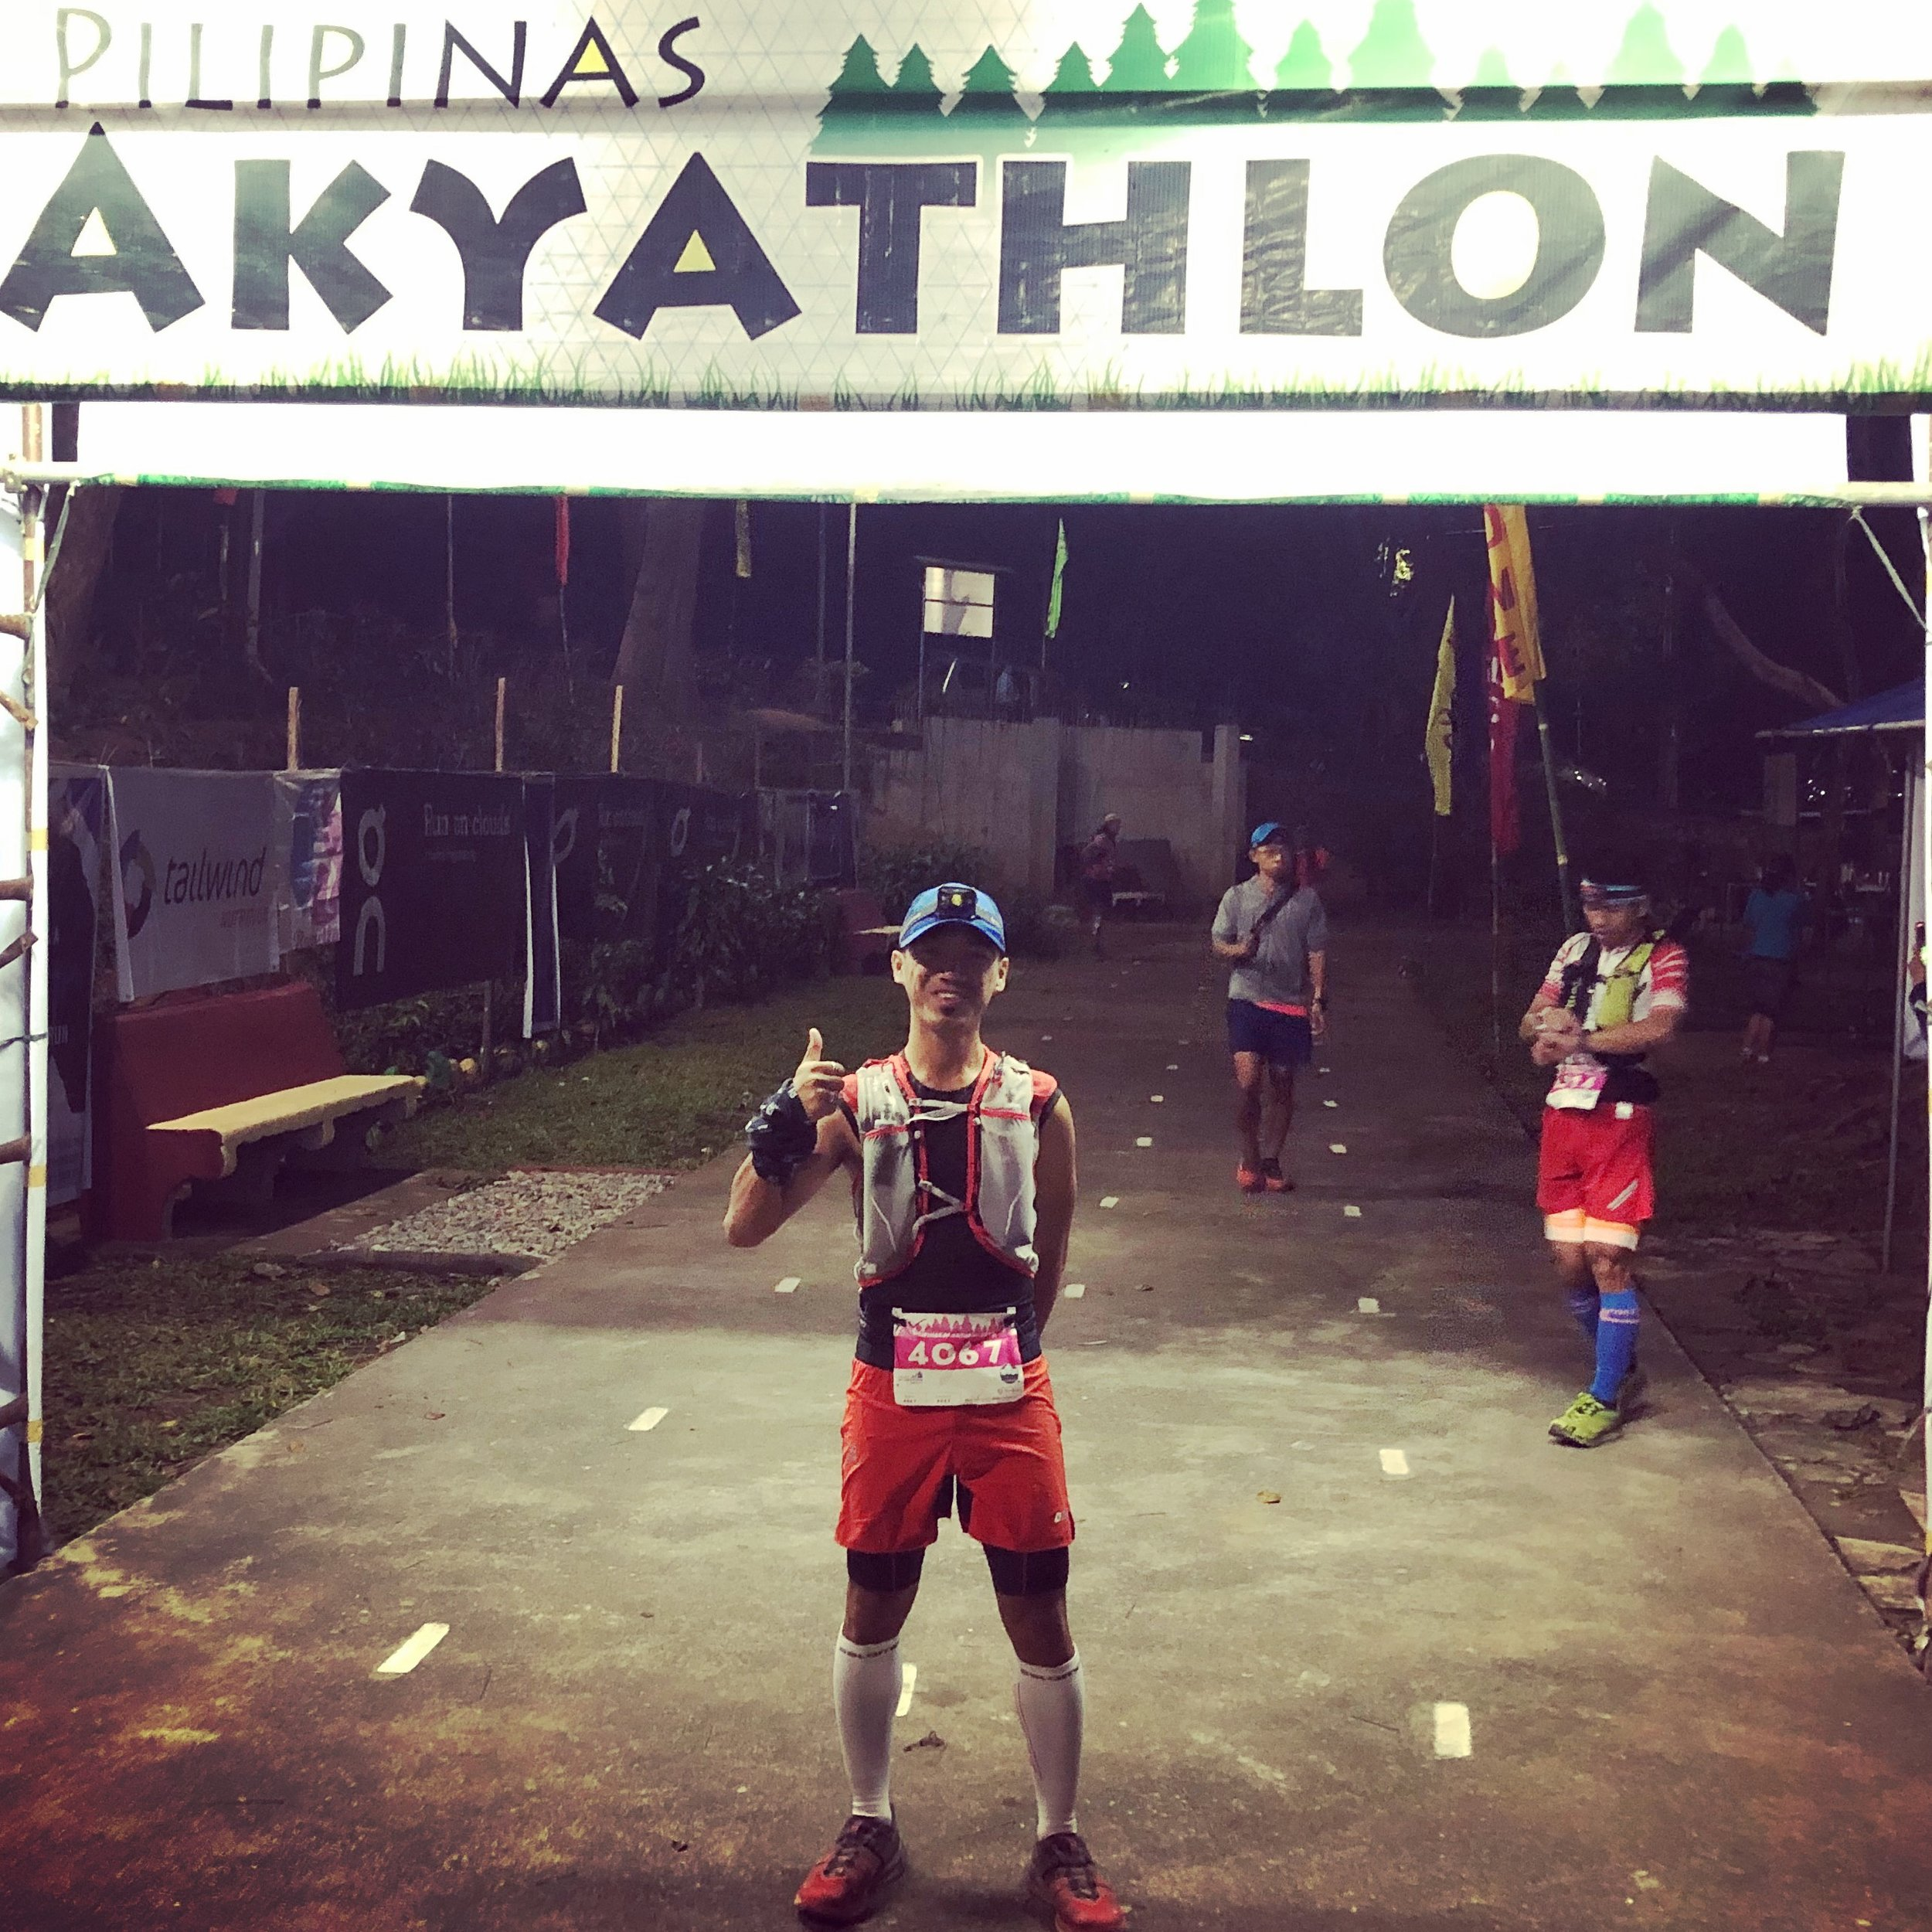 John Eruel Oquino is one of the strongmen who doubled up 9 Dragons 50 miles and Akyathlon